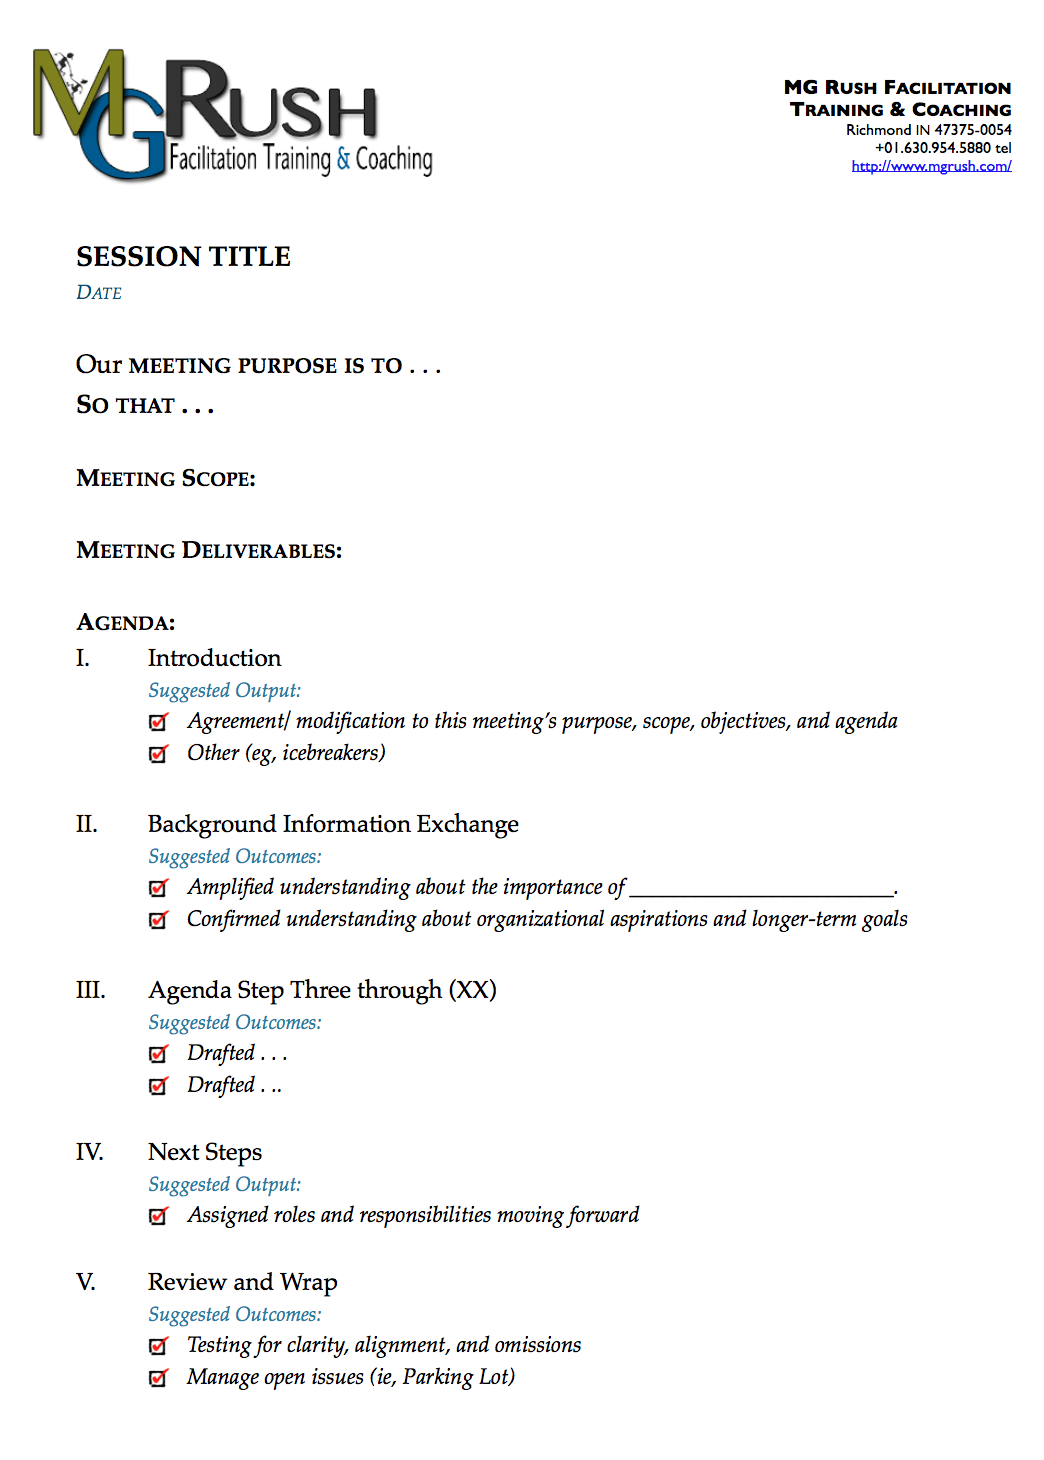 Best One-Page Agenda Template for a 50-Minute Meeting